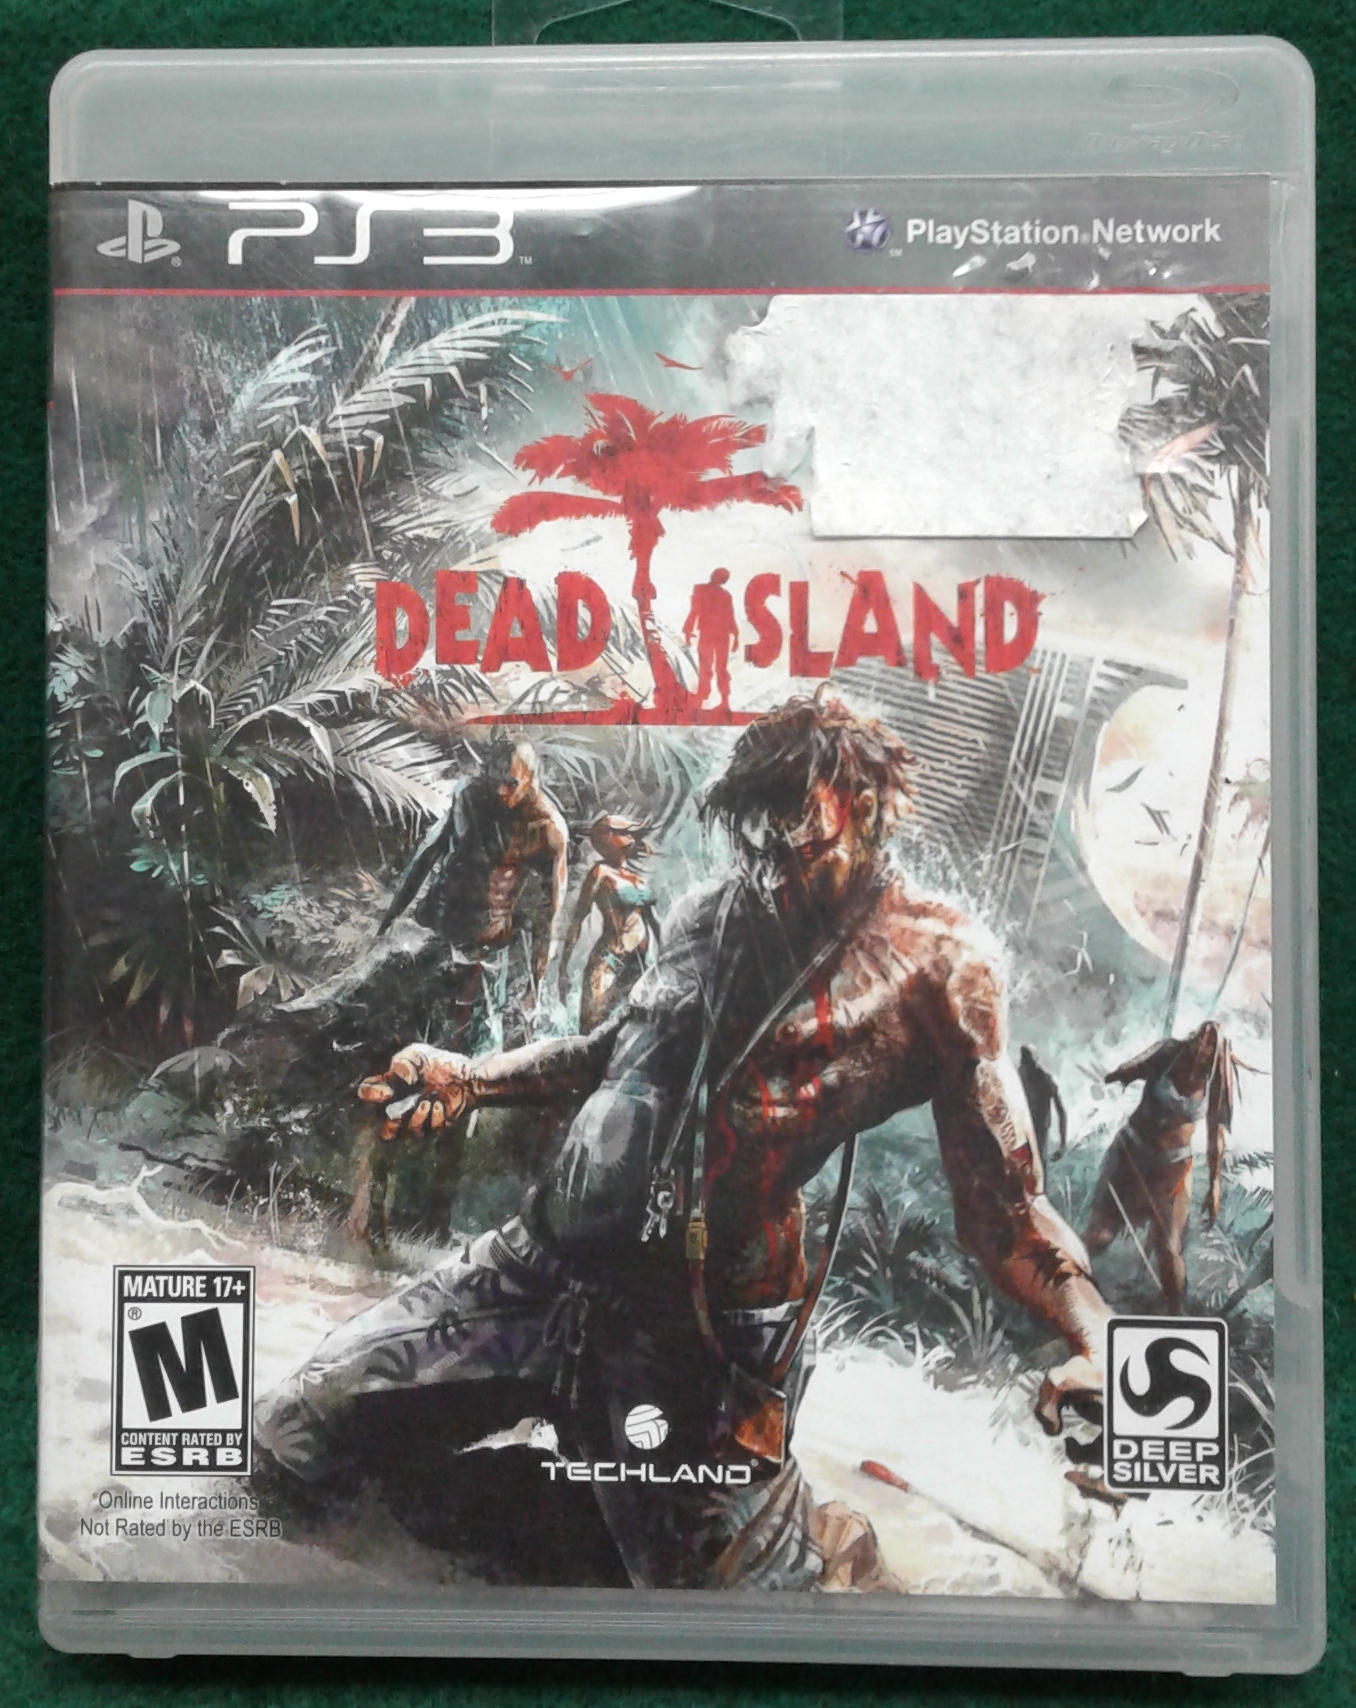 DEAD ISLAND - PS3 GAME